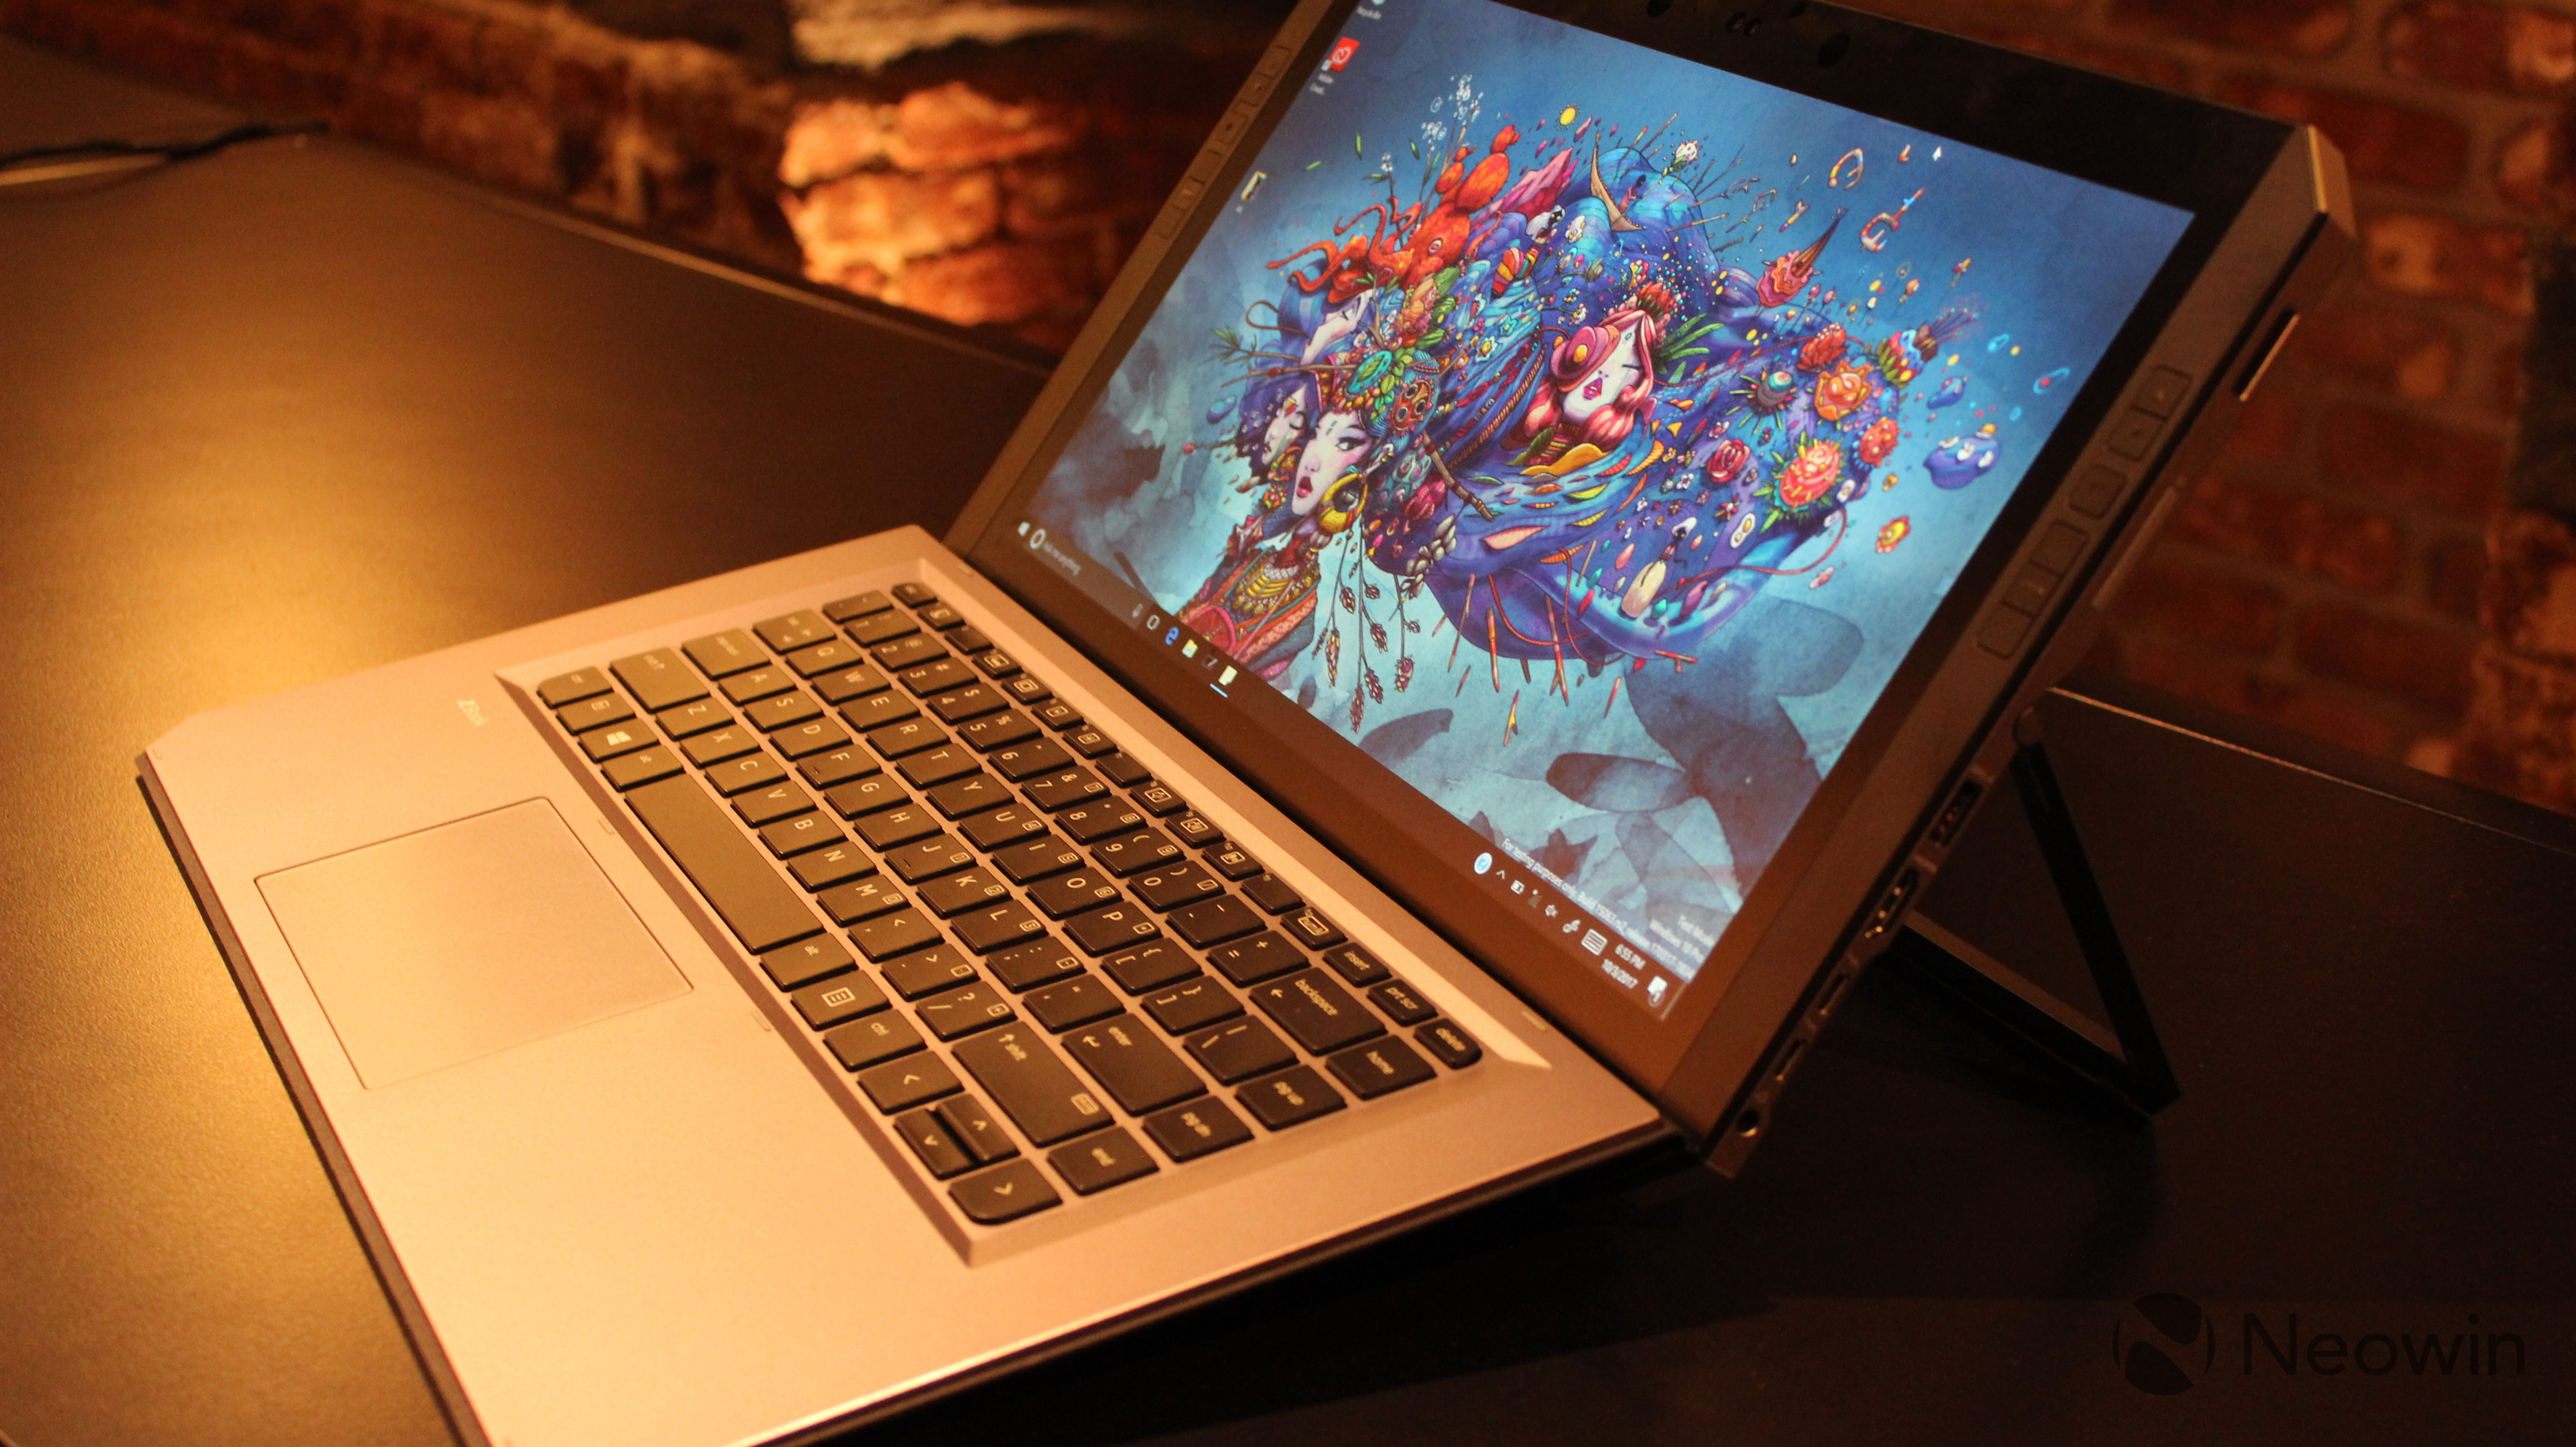 HP made a ridiculously powerful detachable tablet for artists